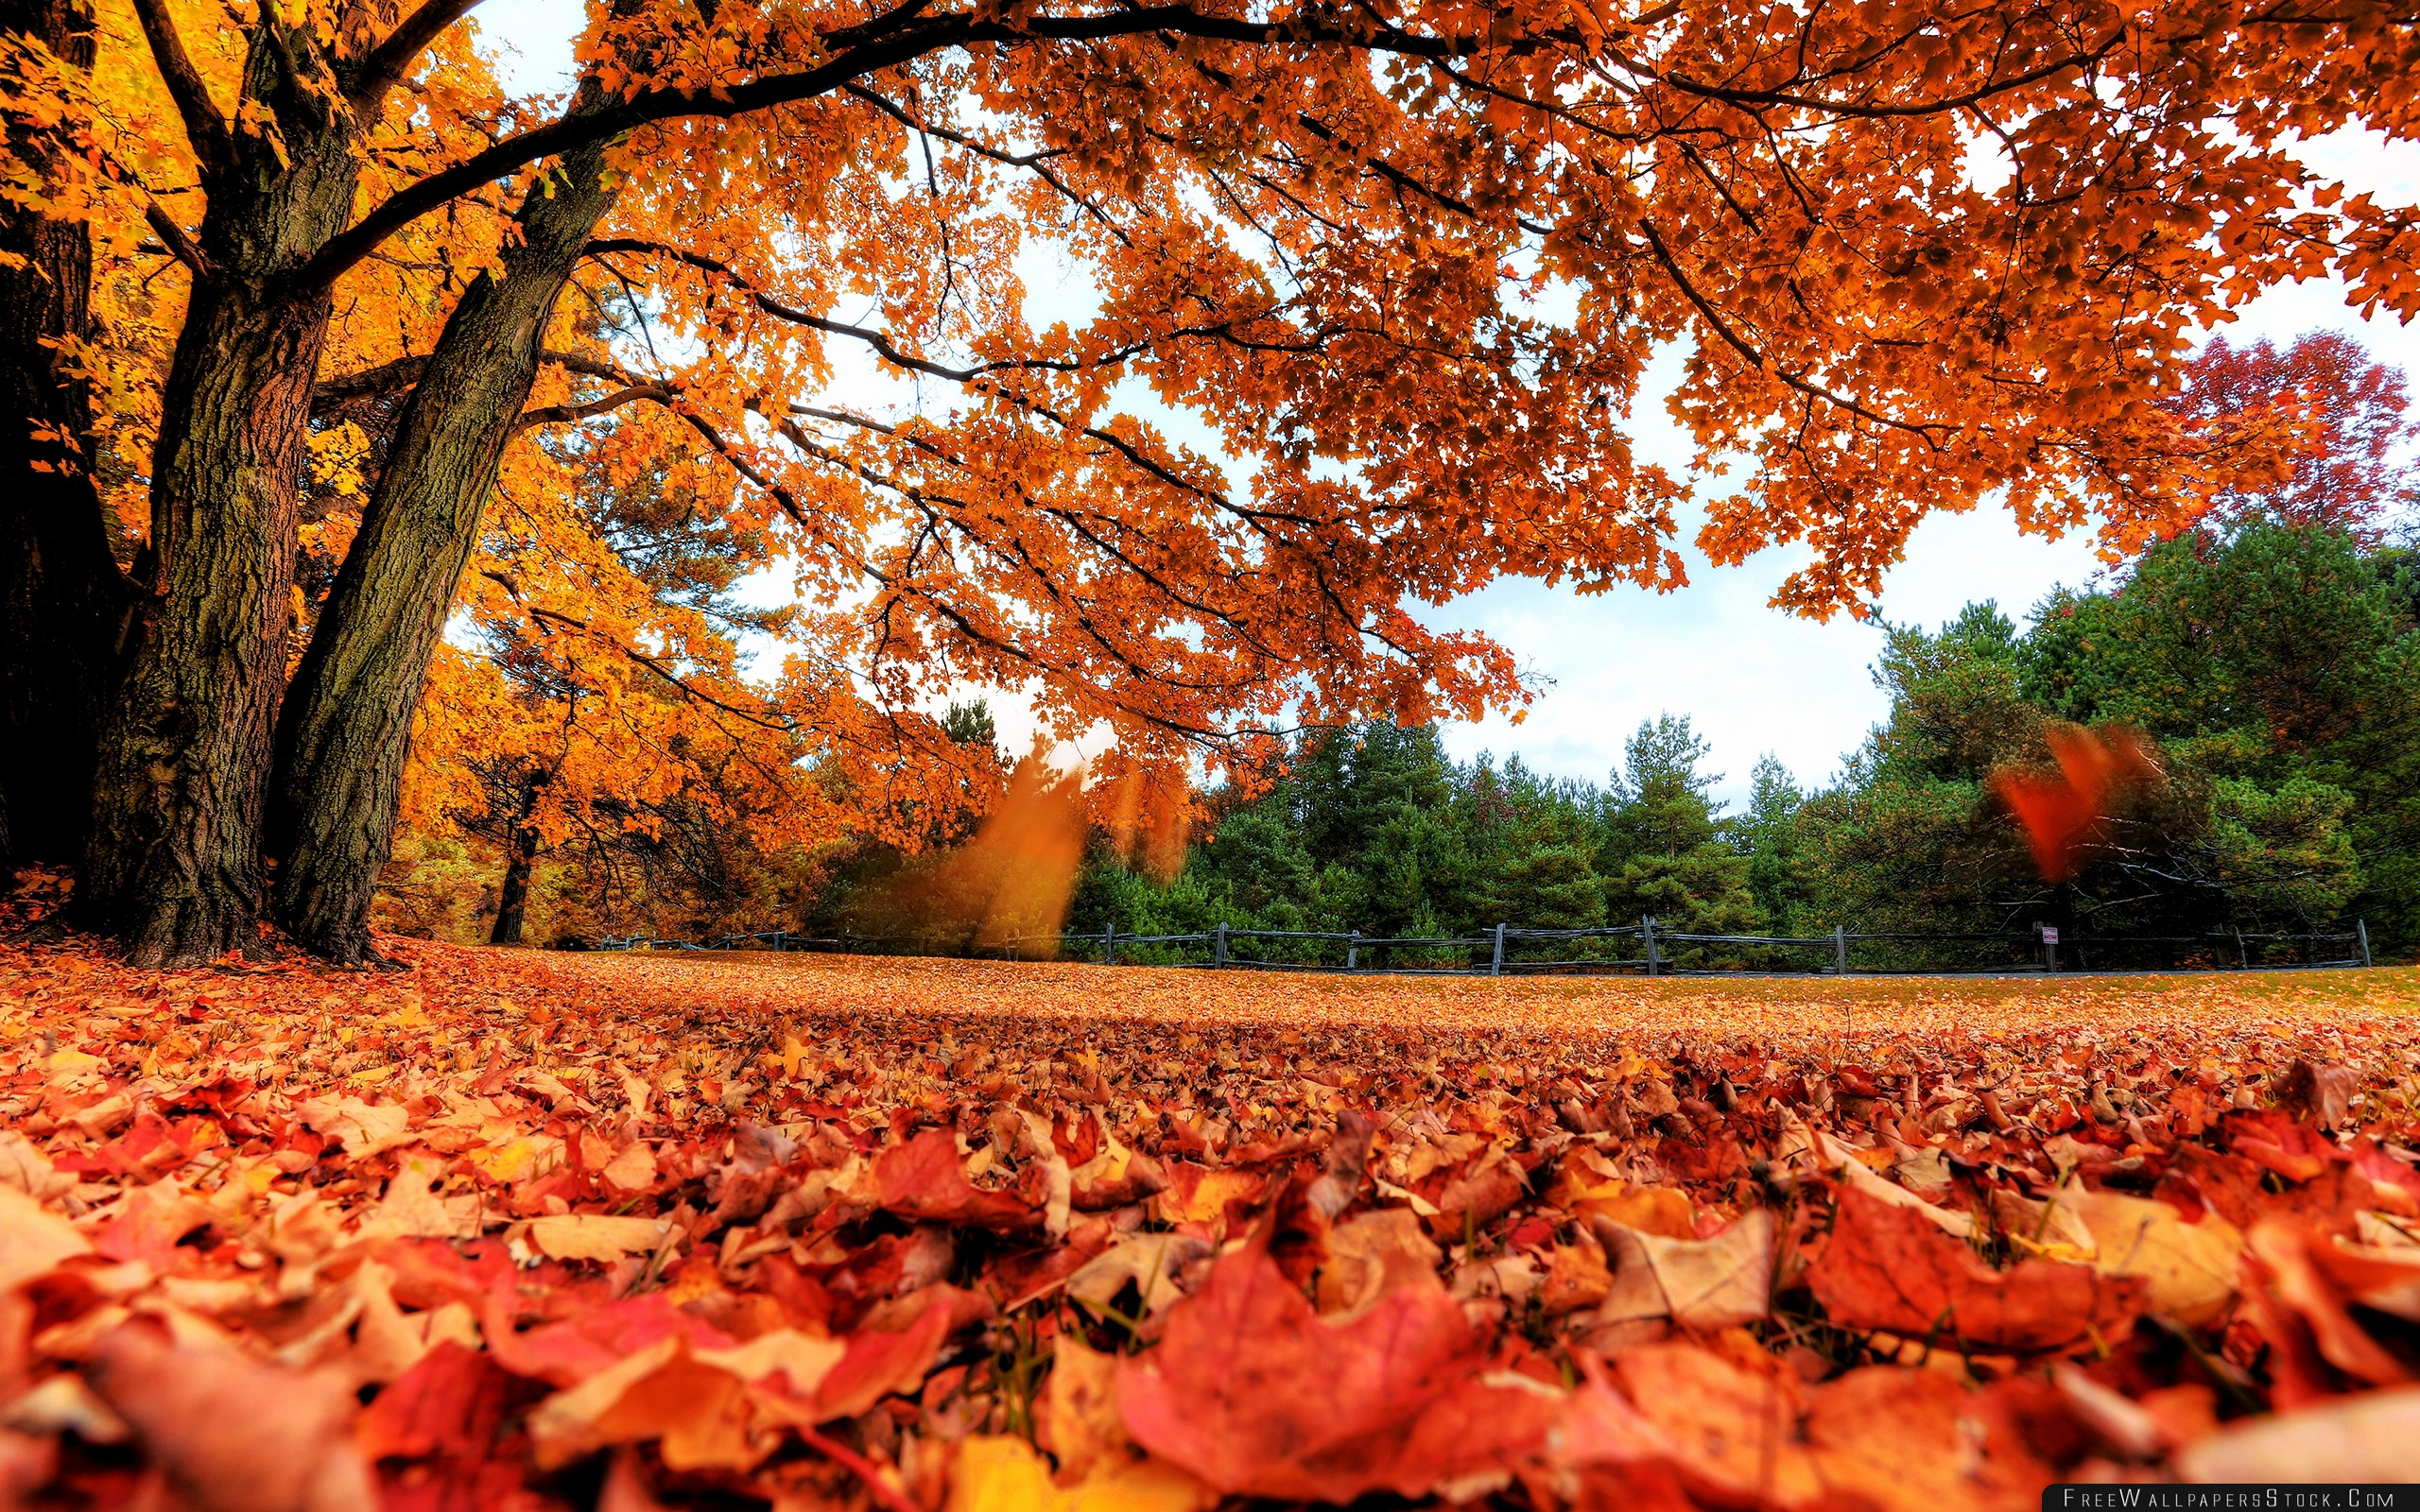 Download Free Wallpaper Autumn Leaves Nature